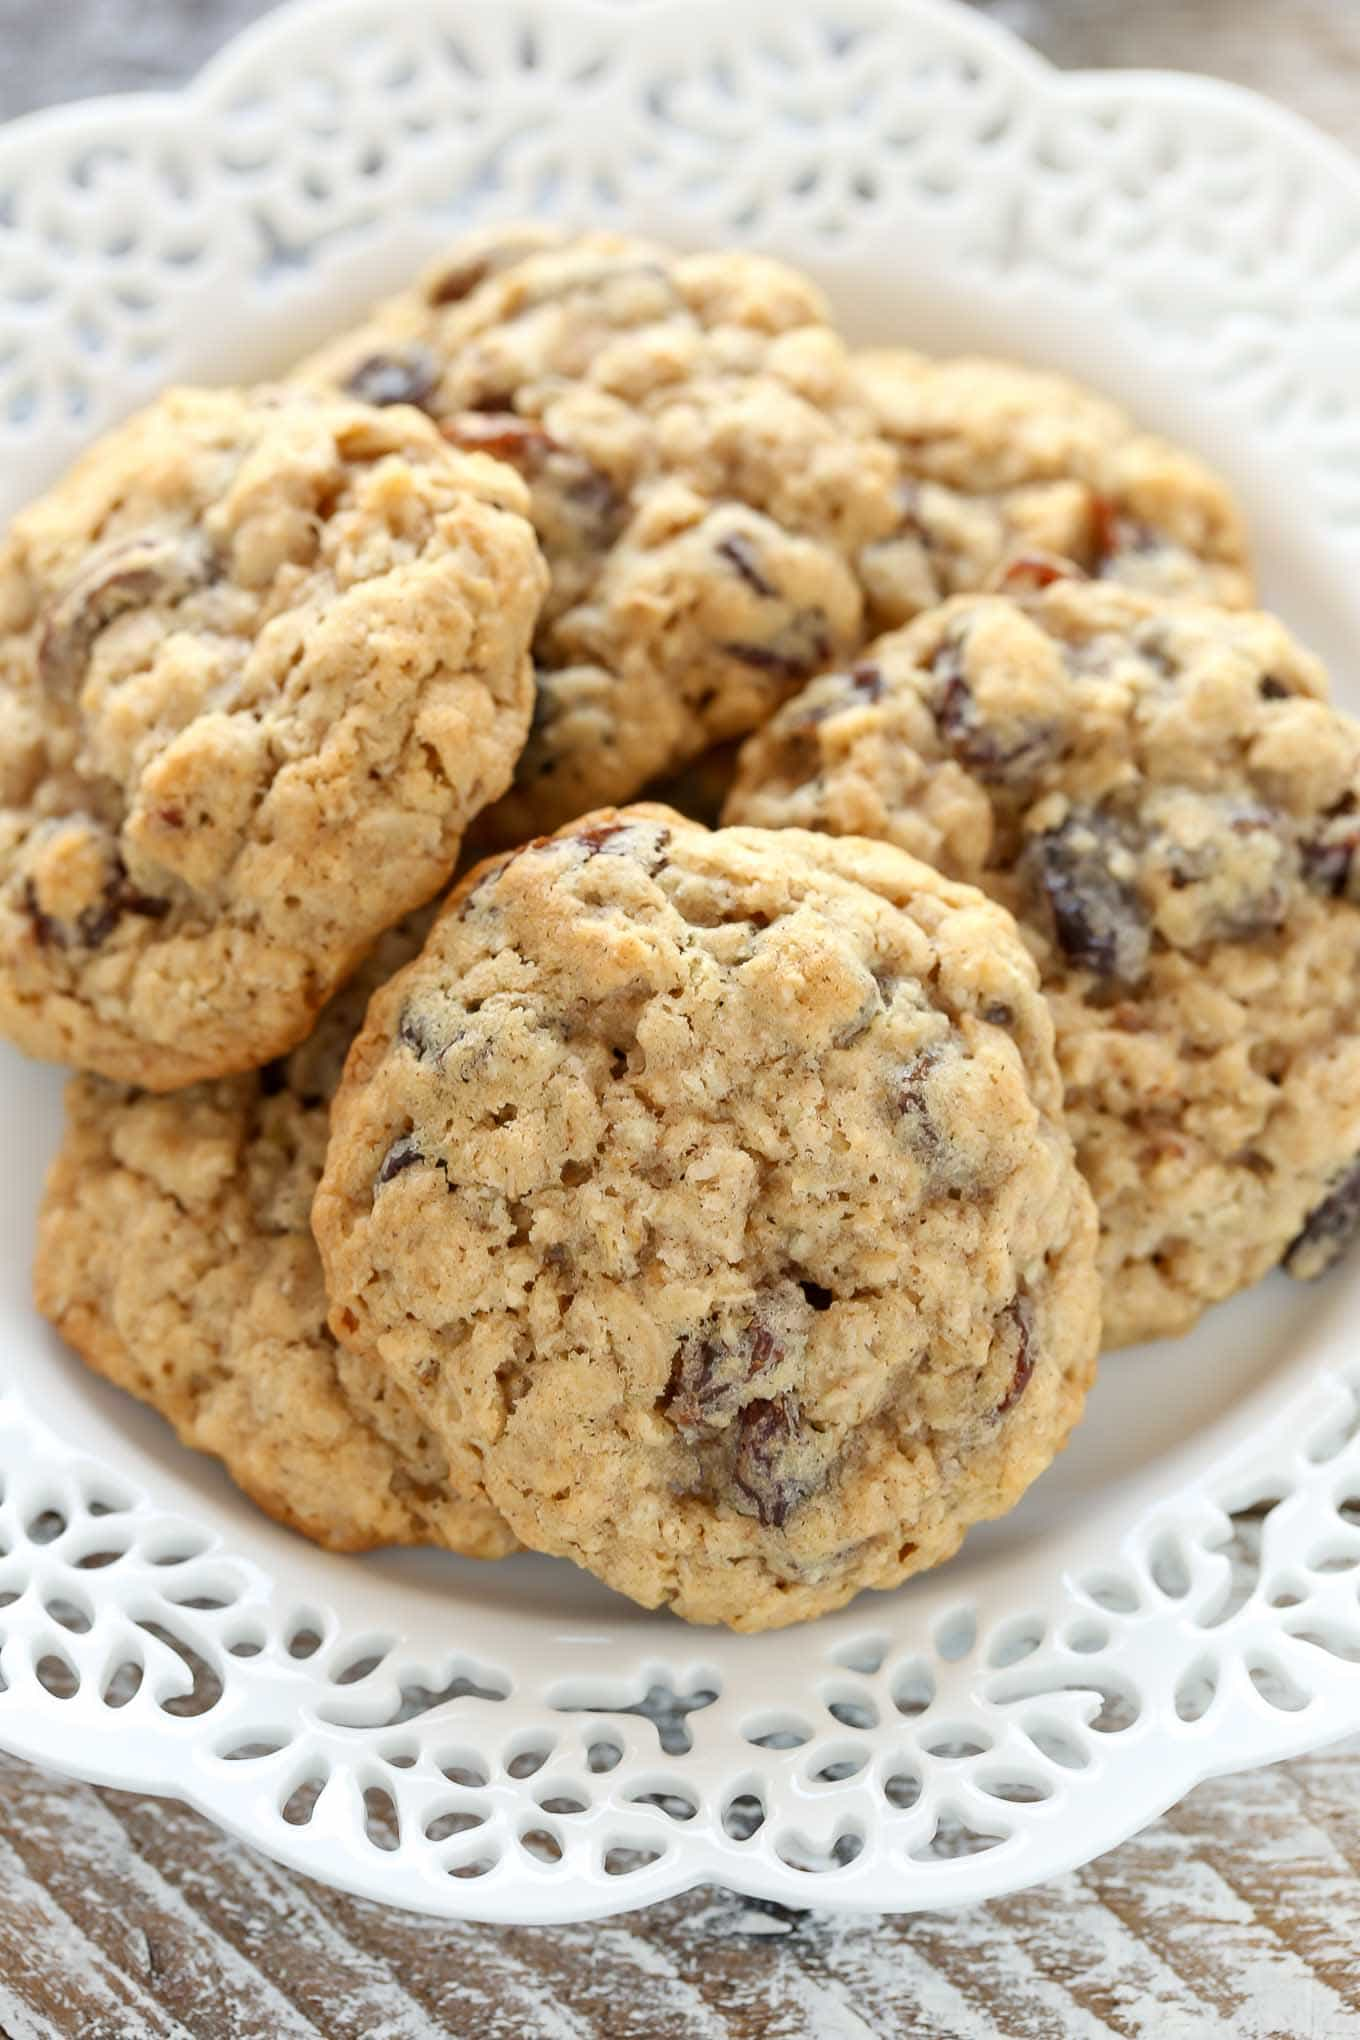 Watch 5 Easy Recipes For Healthy Cookies You'll Actually Want toEat video